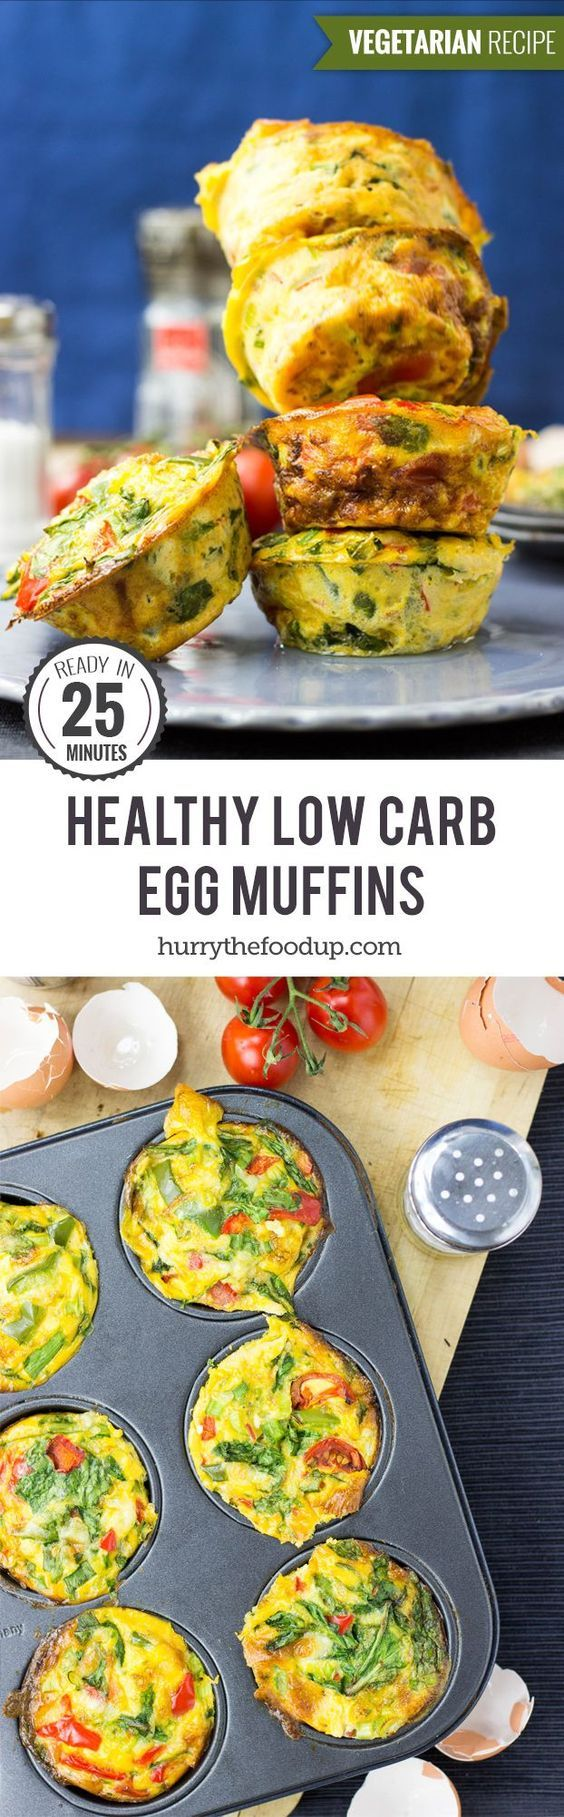 Healthy Low Carb Egg Breakfast Muffins